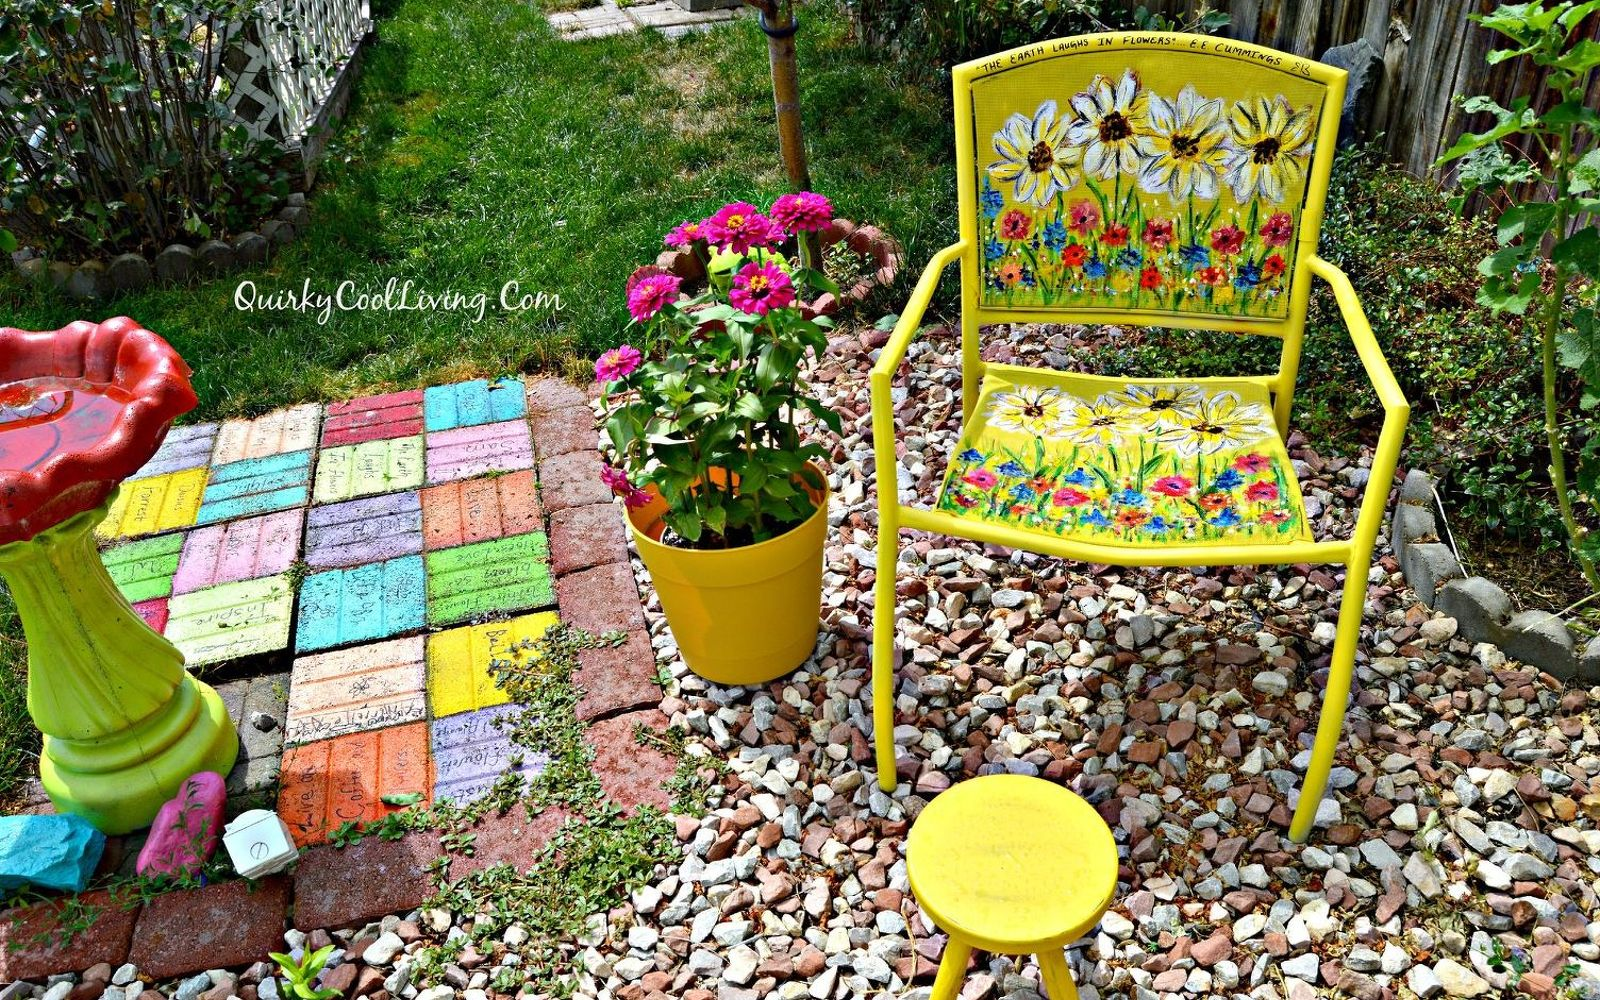 s 12 pool chair ideas we never would have thought of, painted furniture, pool designs, Paint a drab chair into floral masterpiece